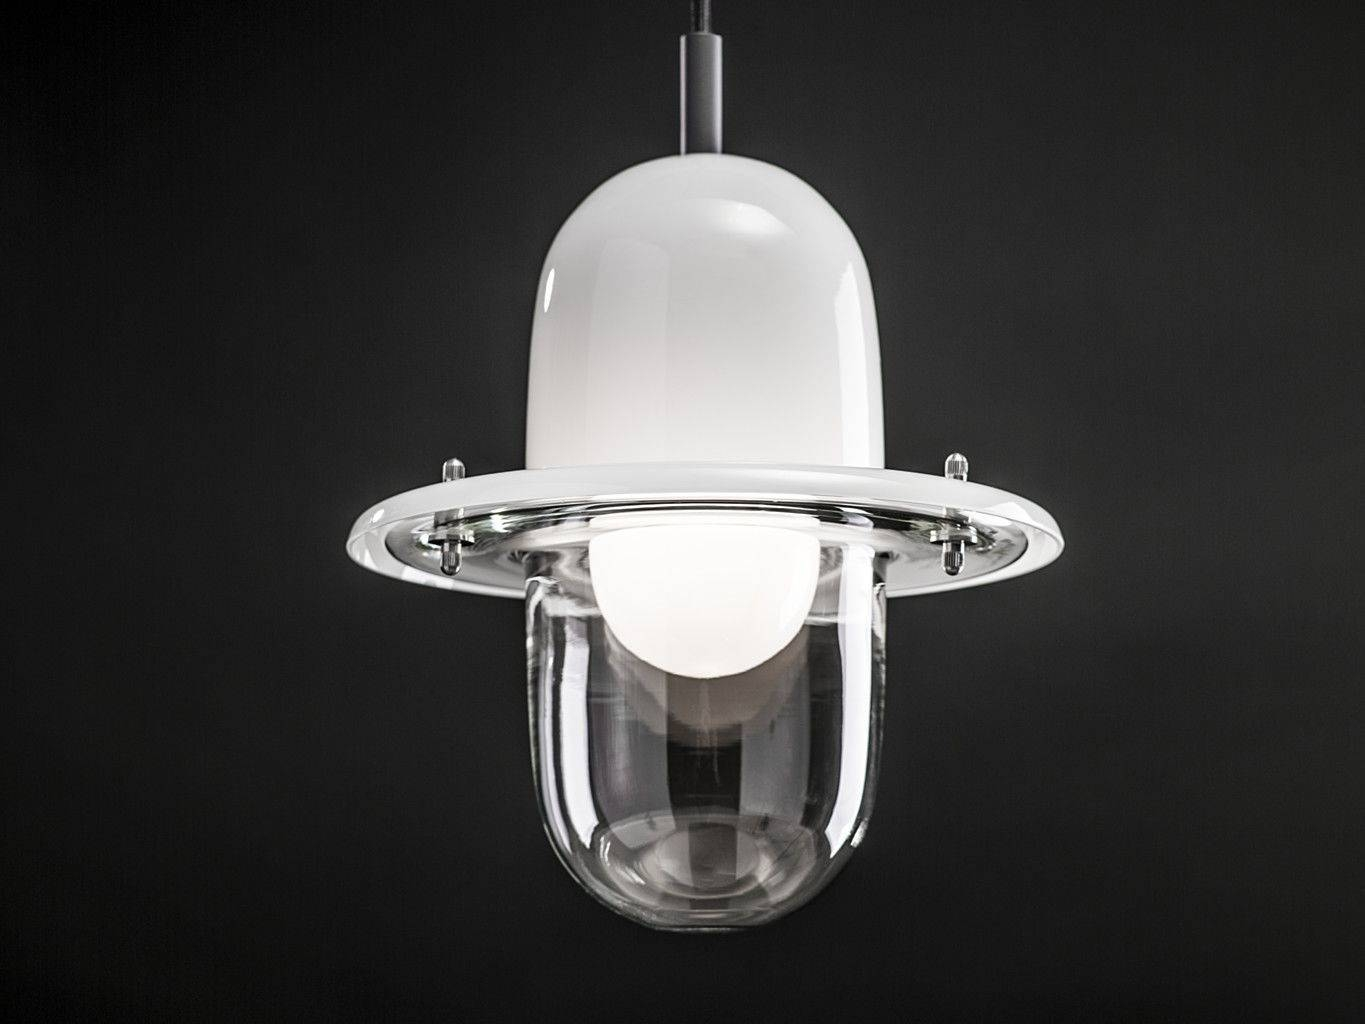 Pendant Lamp / Industrial Design / Glass / Stainless Steel - Hats regarding Stainless Steel Industrial Pendant Lights (Image 11 of 15)